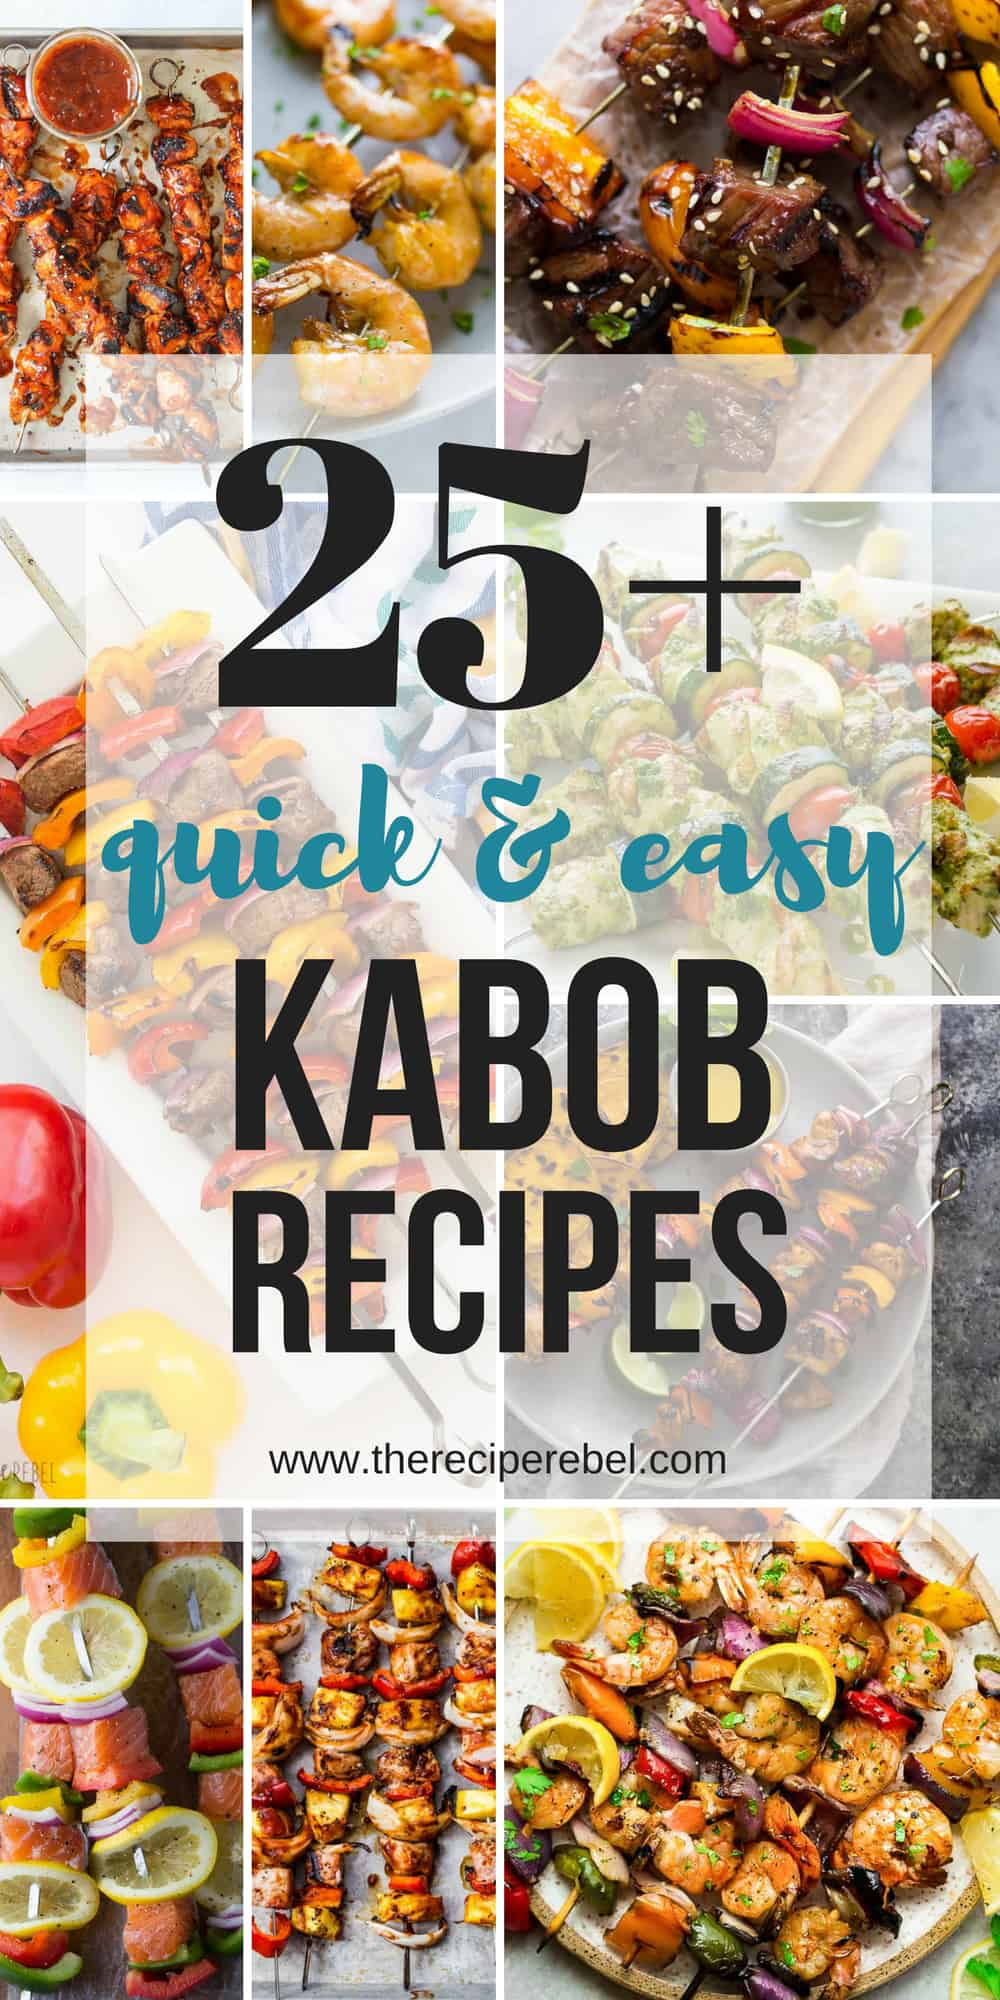 All kinds of kabob recipes for summer grilling! Chicken kabobs, shrimp kabobs, steak kabobs, and dessert kabobs! Because food on a stick is more fun ;)